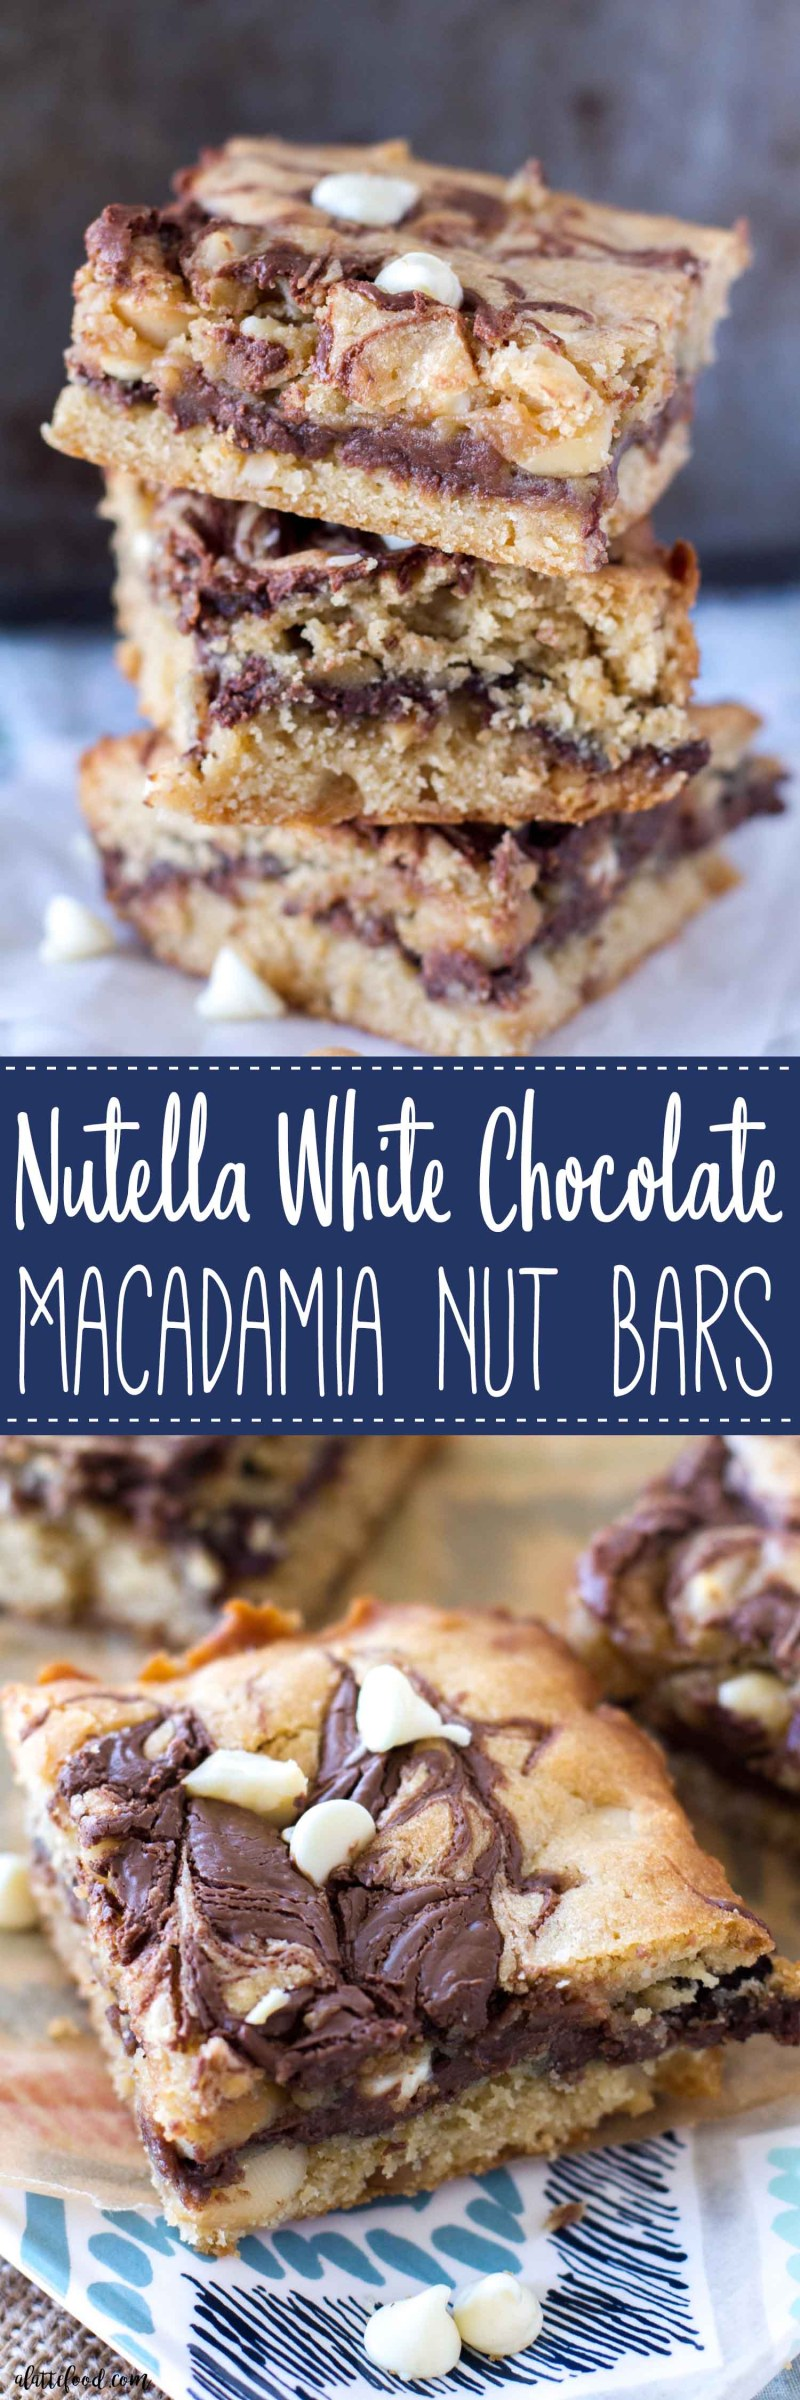 These indulgently rich Nutella White Chocolate Macadamia Nut Bars have a gooey Nutella center!  These Nutella gooey bars are like a White Chocolate Macadamia Nut Cookie met a Nutella Cookie Bar to create anirresistible dessert bar!These gooey Nutella bars are the life of the party. With all of the white chocolate chips, macadamia nuts, and swirls of Nutella, how could they not be?